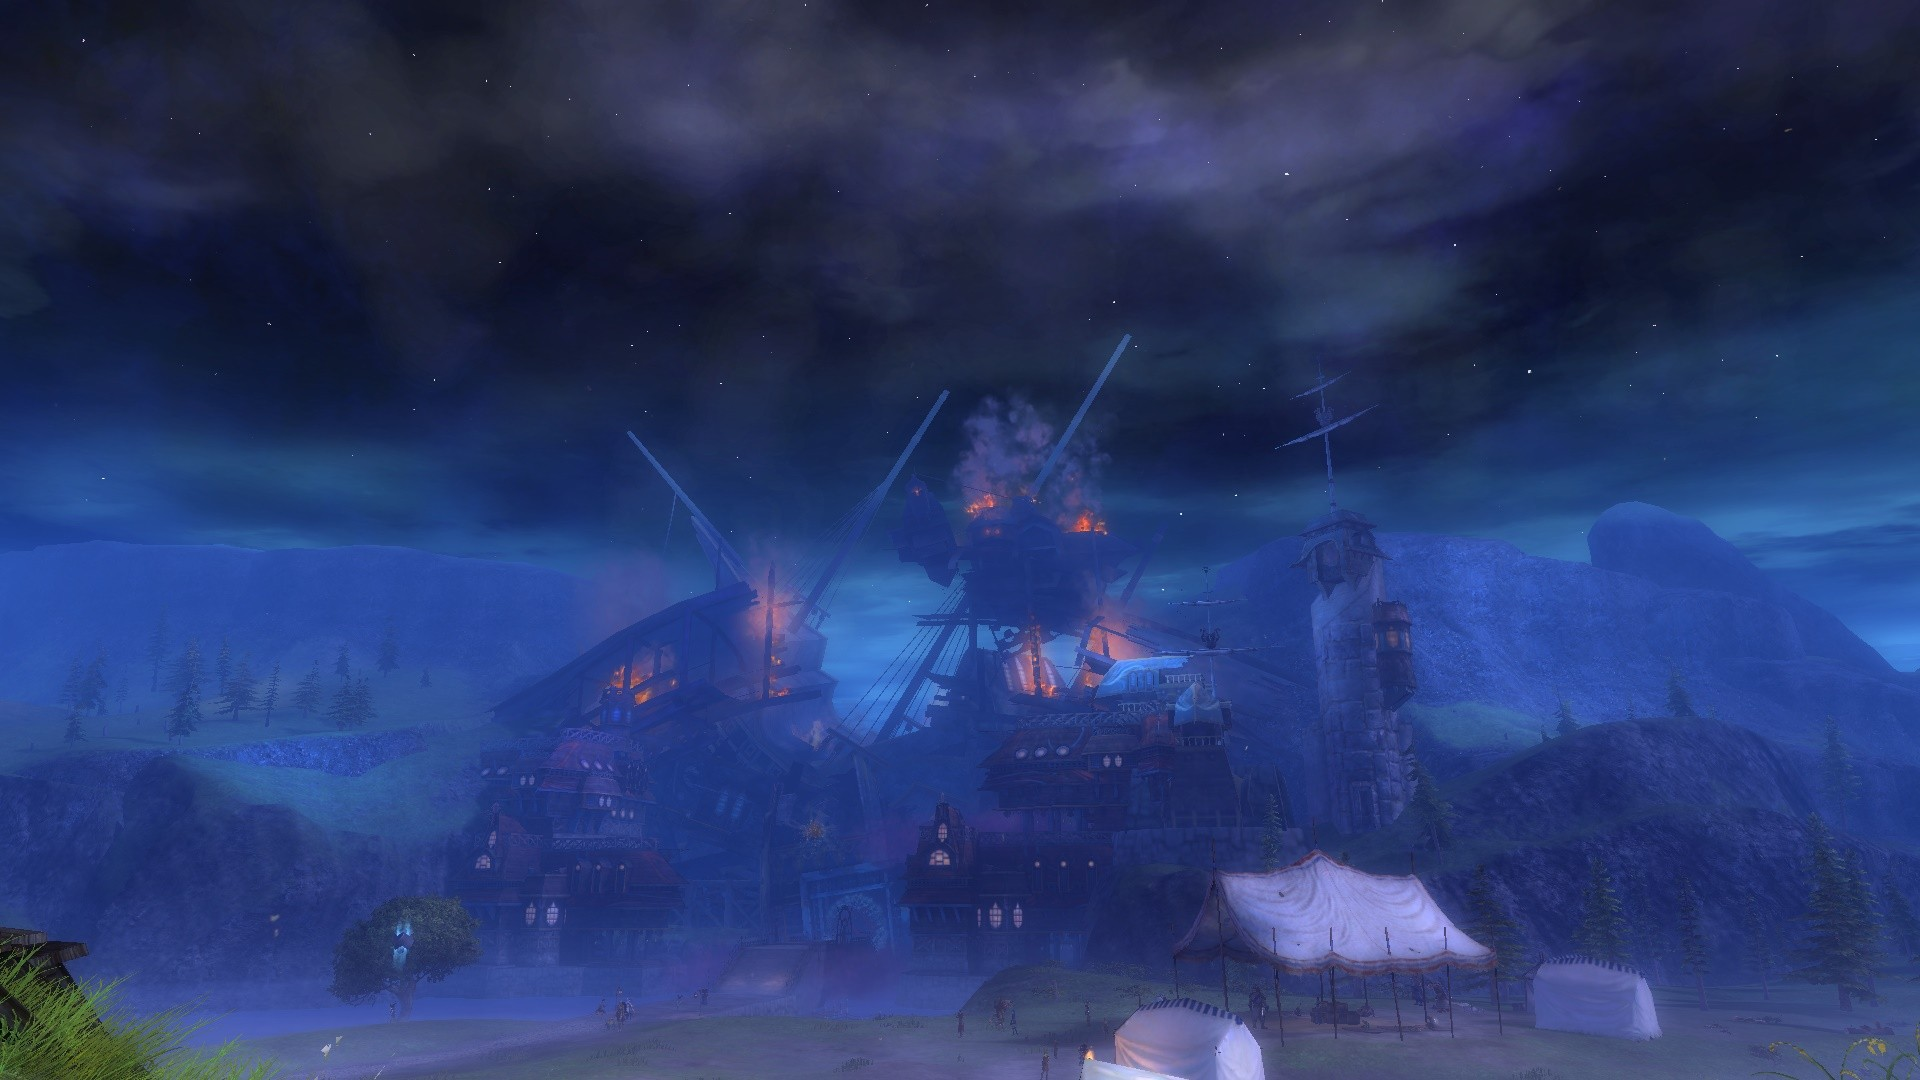 GW2 Lions Arch on fire :(